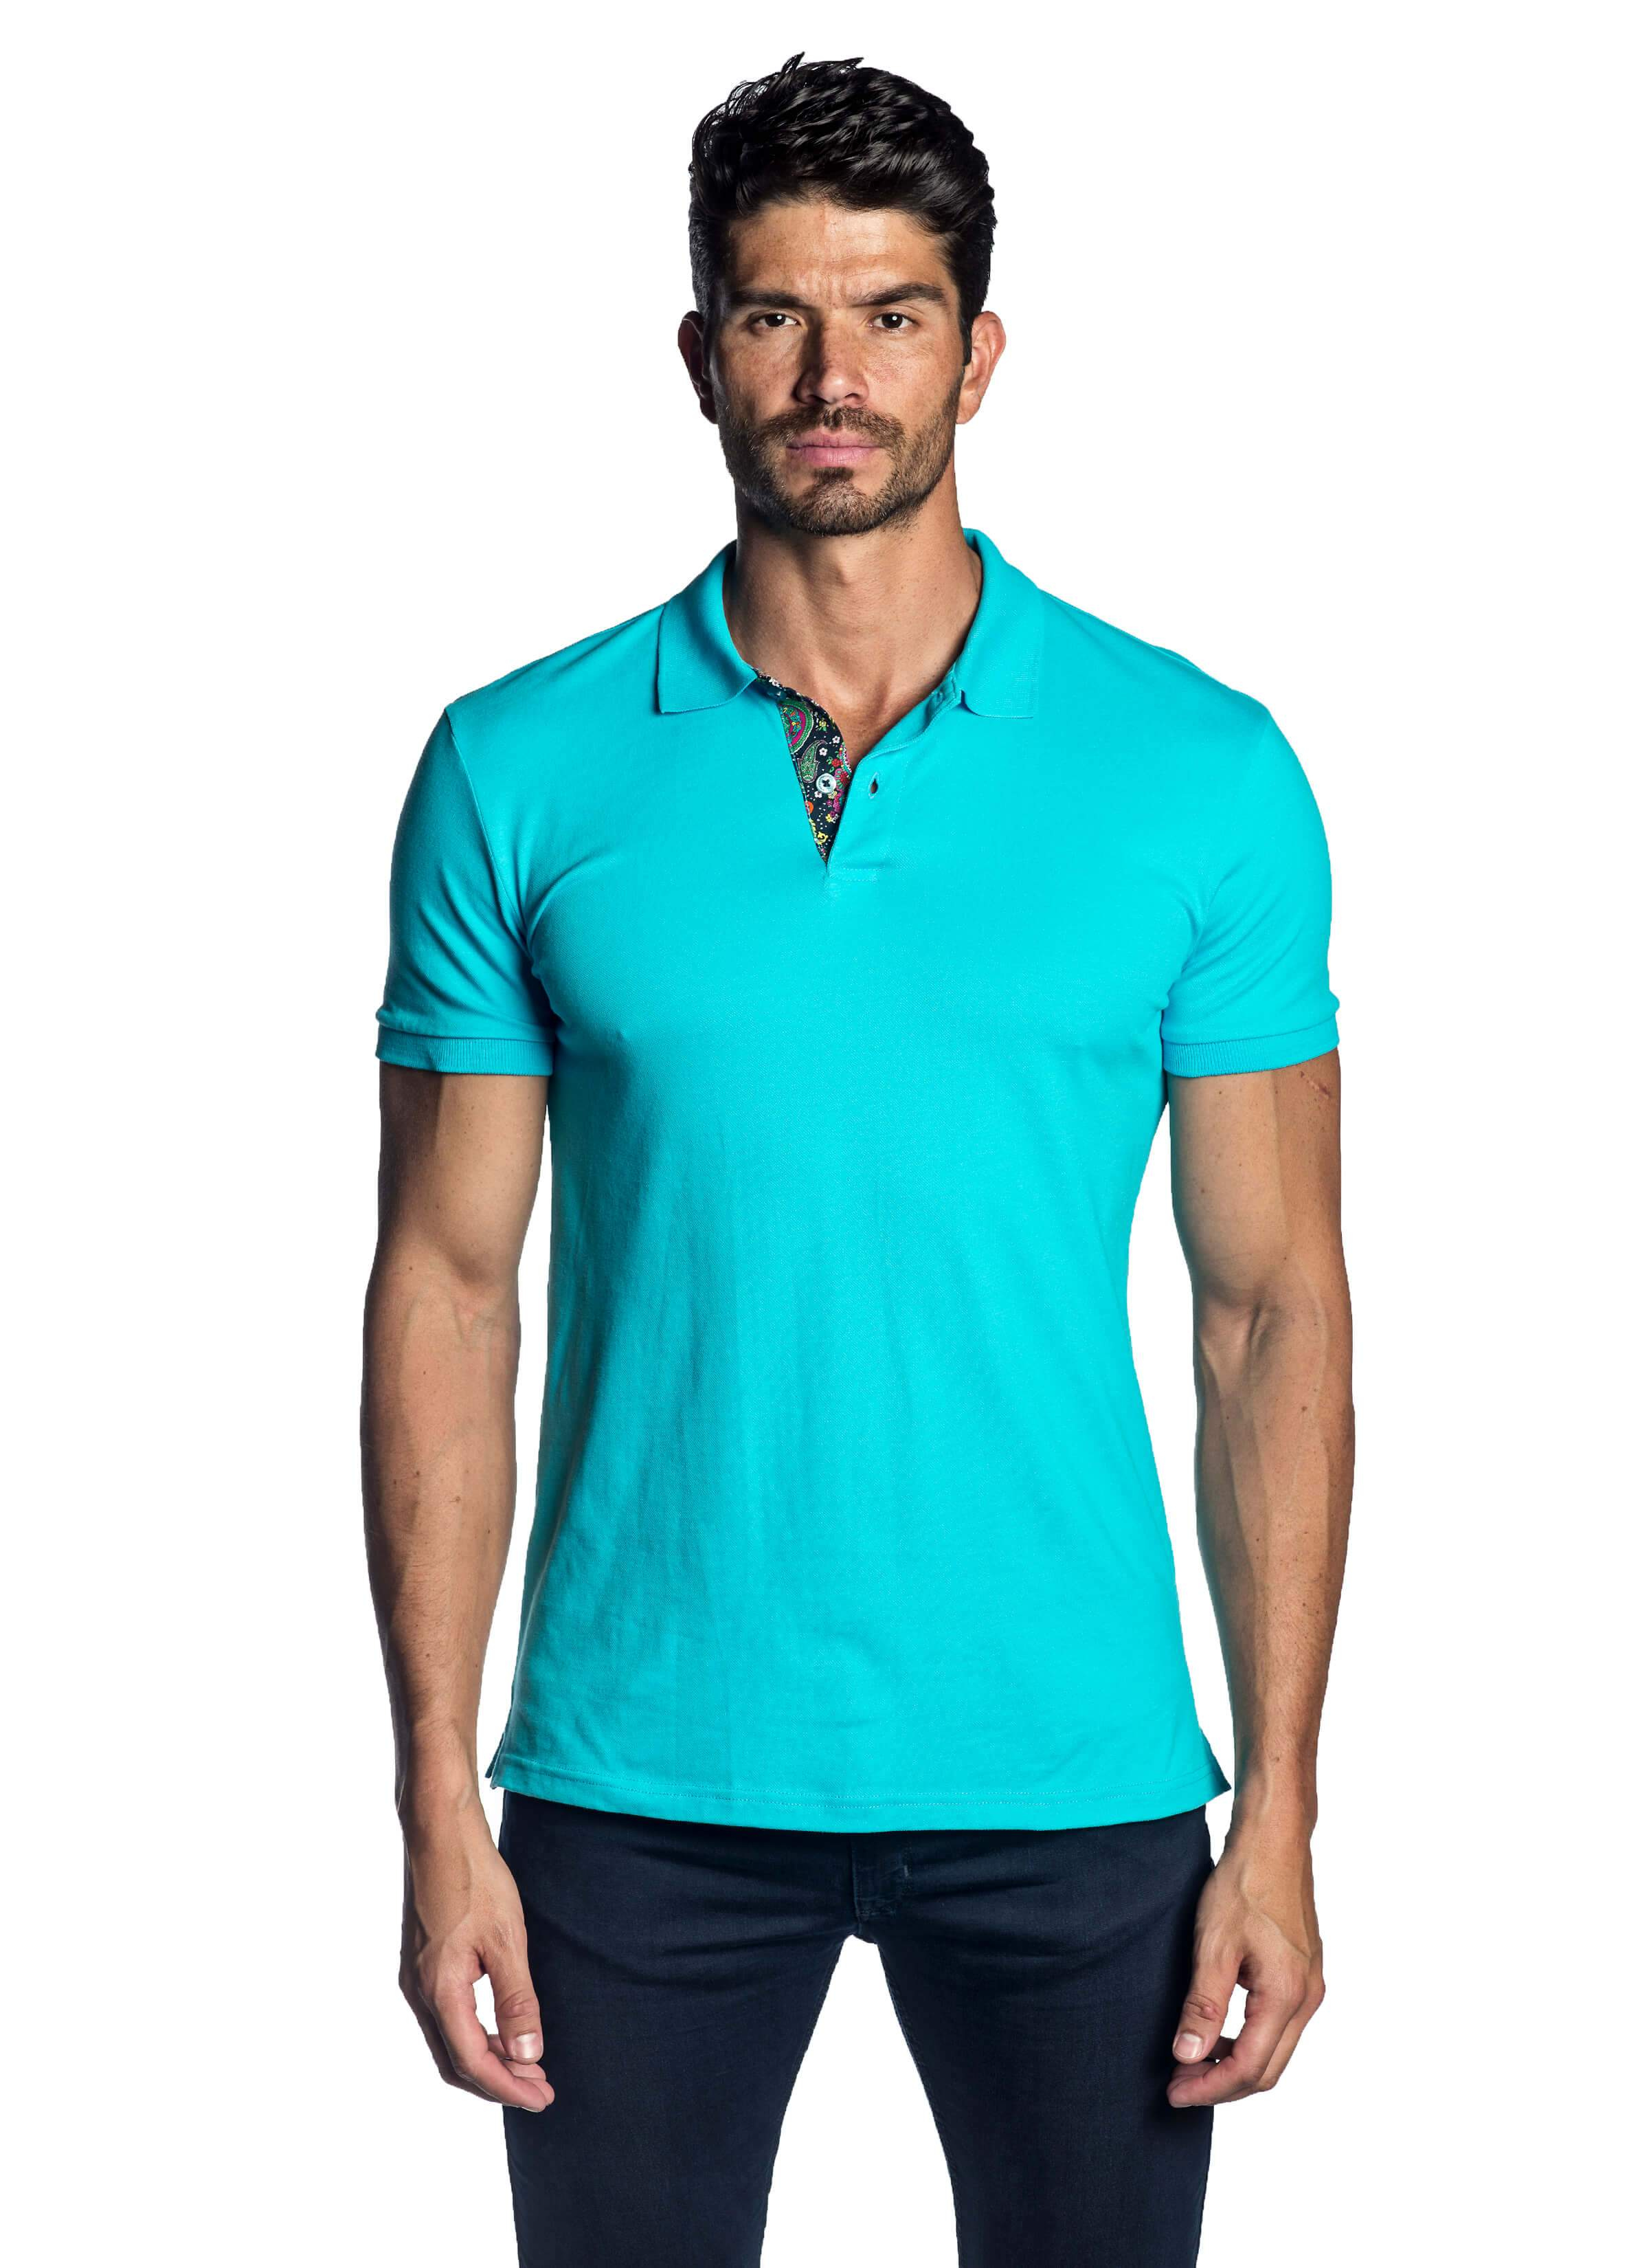 Turquoise Polo Short Sleeve PS-5002